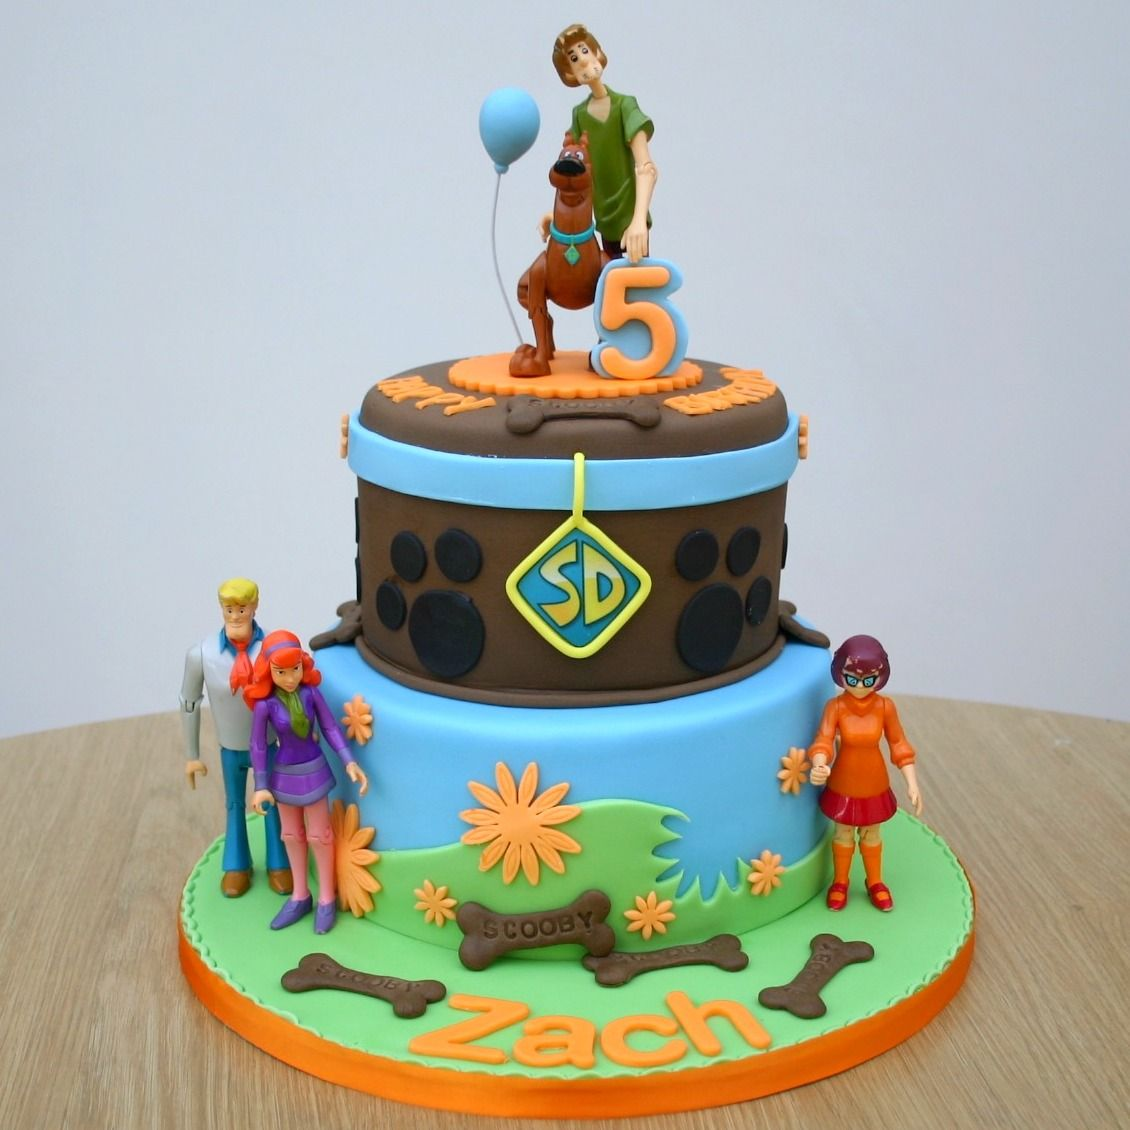 Scooby Doo Cake With Images Scooby Doo Birthday Cake Scooby